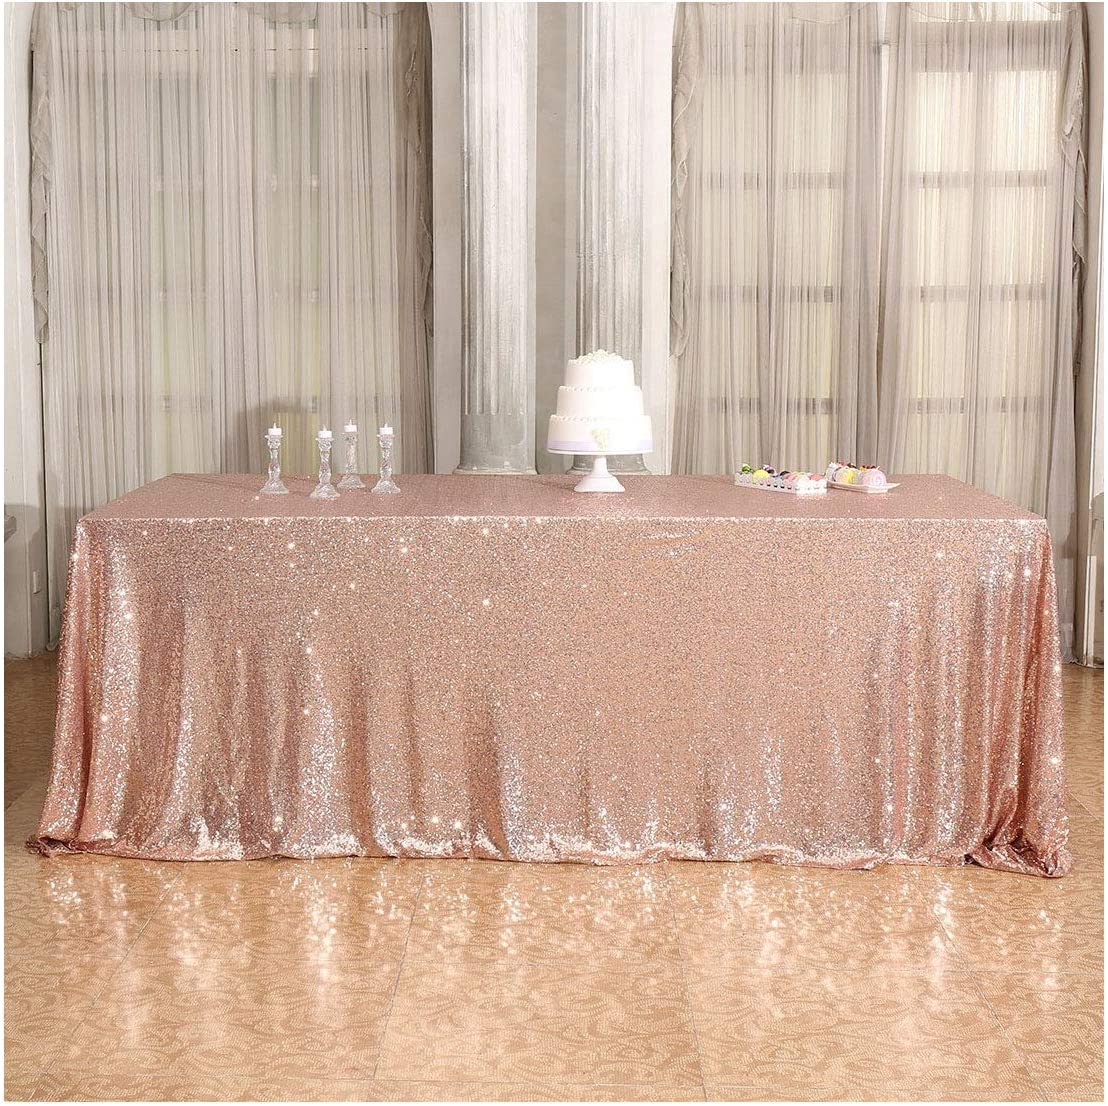 Poise3EHome 60×102'' Rectangle Sequin Tablecloth for Party Cake Dessert Table Exhibition Events, Rose Gold